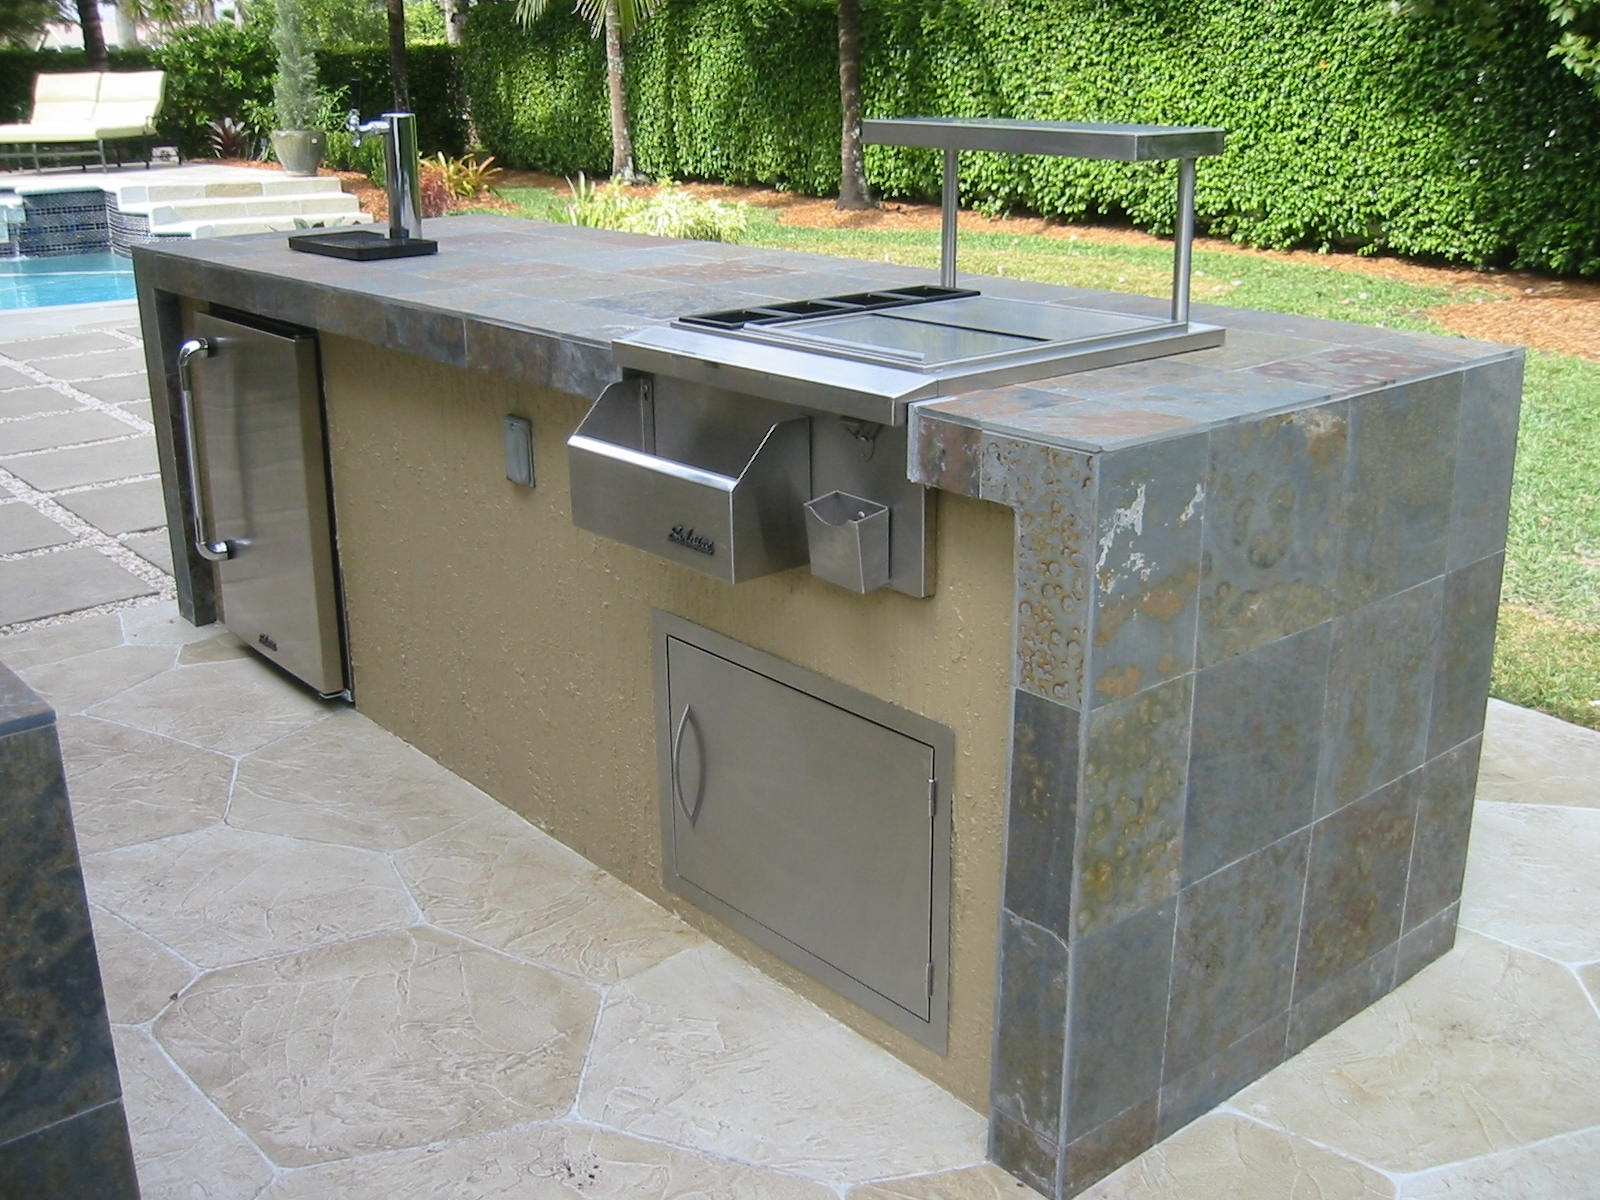 Image of: Kitchen Modular Outdoor Kitchens Outdoor Sinks For Bbq Bbq Kits Within Bbq Outdoor Kitchens Bbq Outdoor Kitchens For Perfect Time